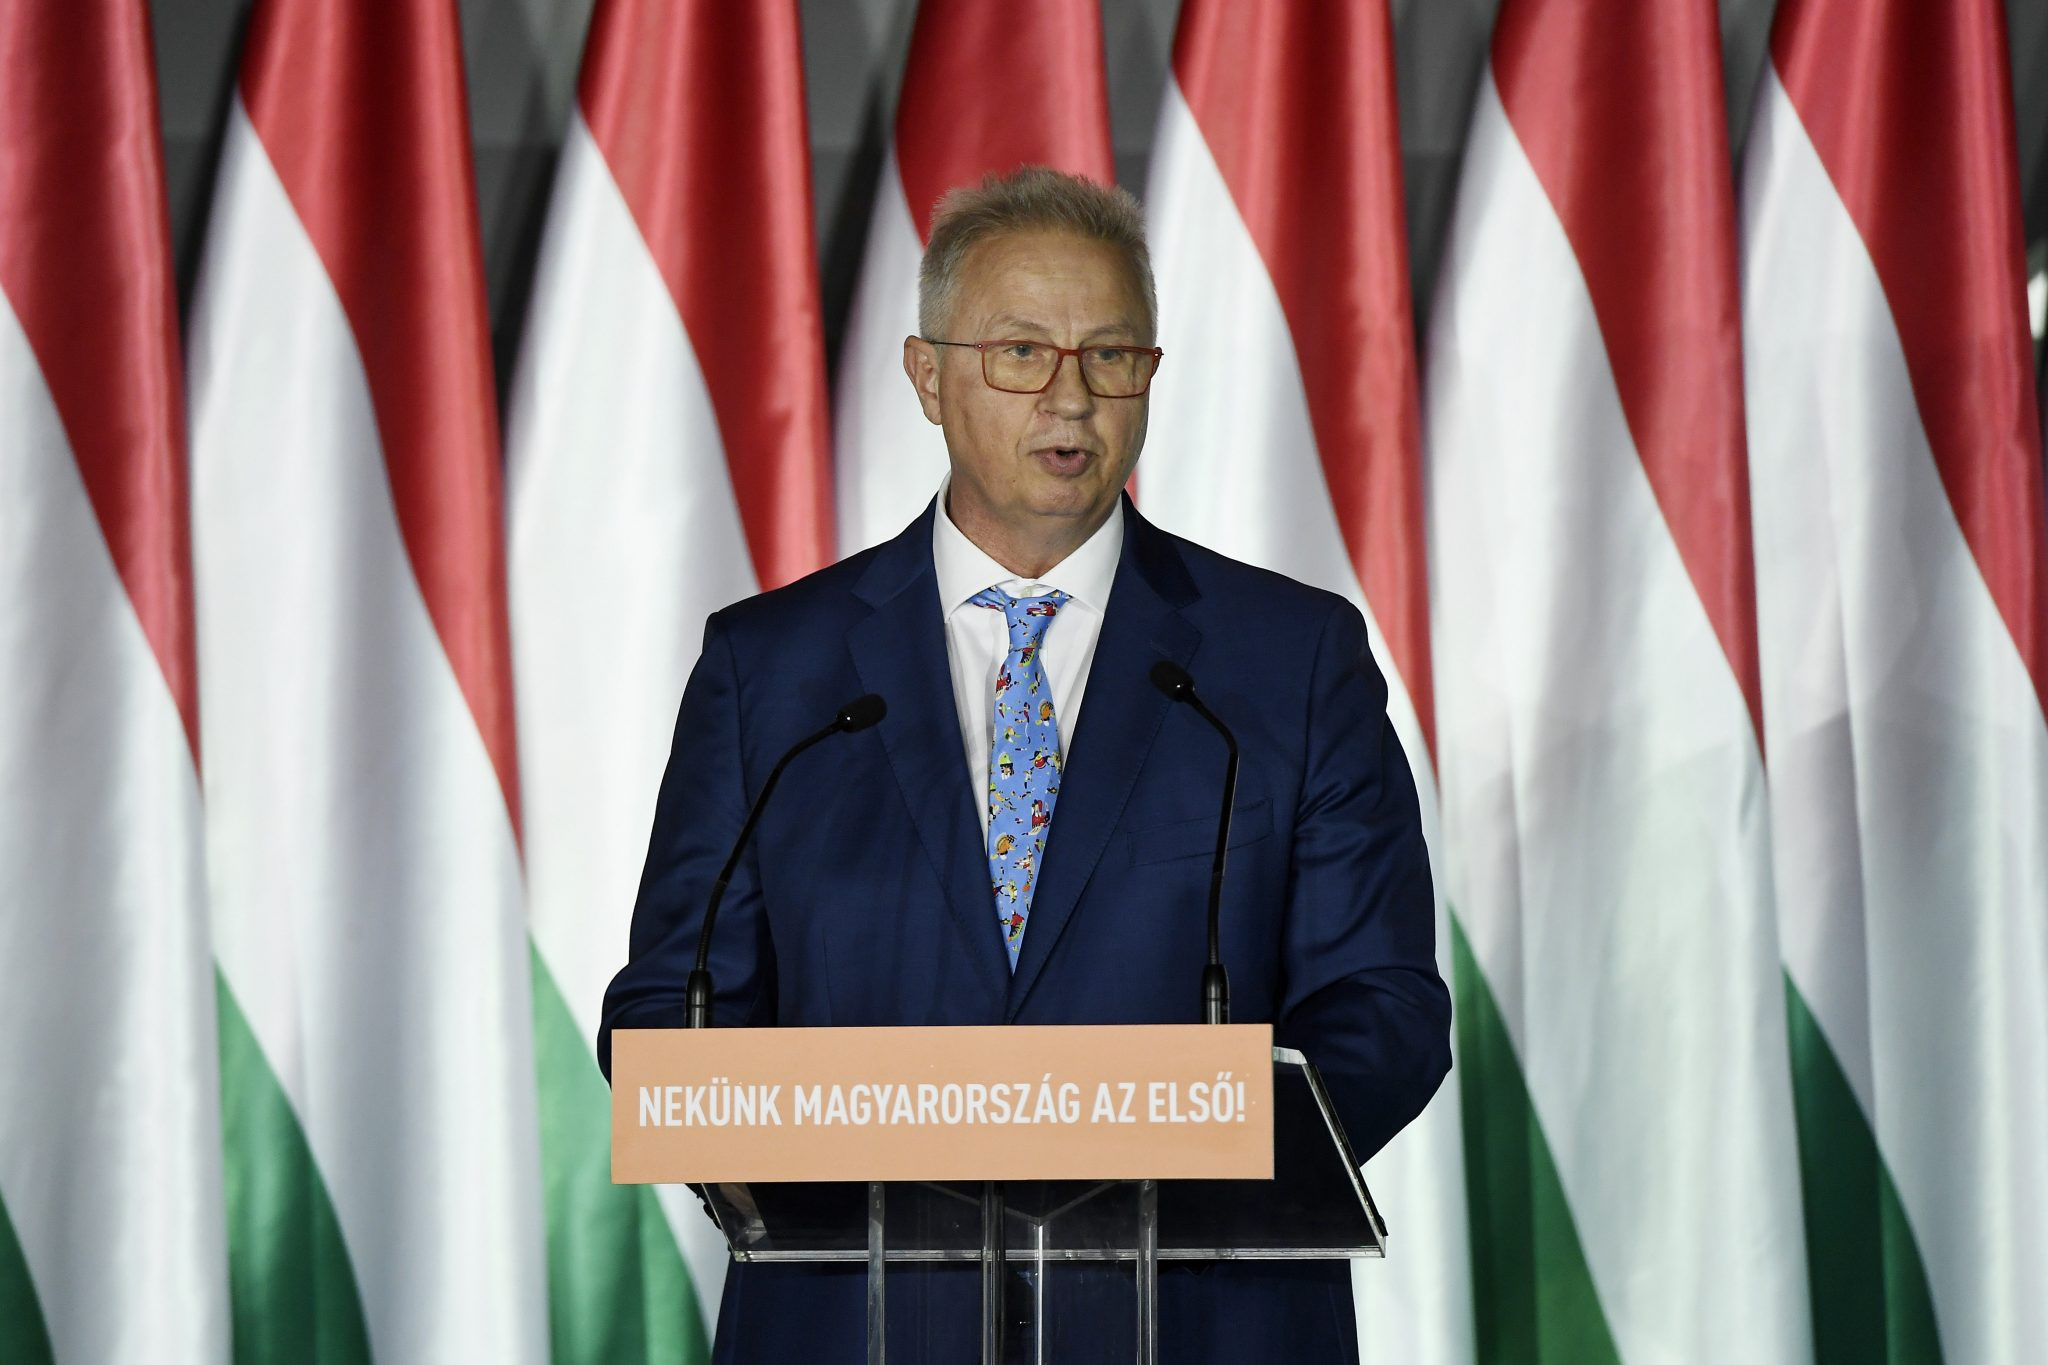 Trócsányi Receives State Order in Lebanon post's picture